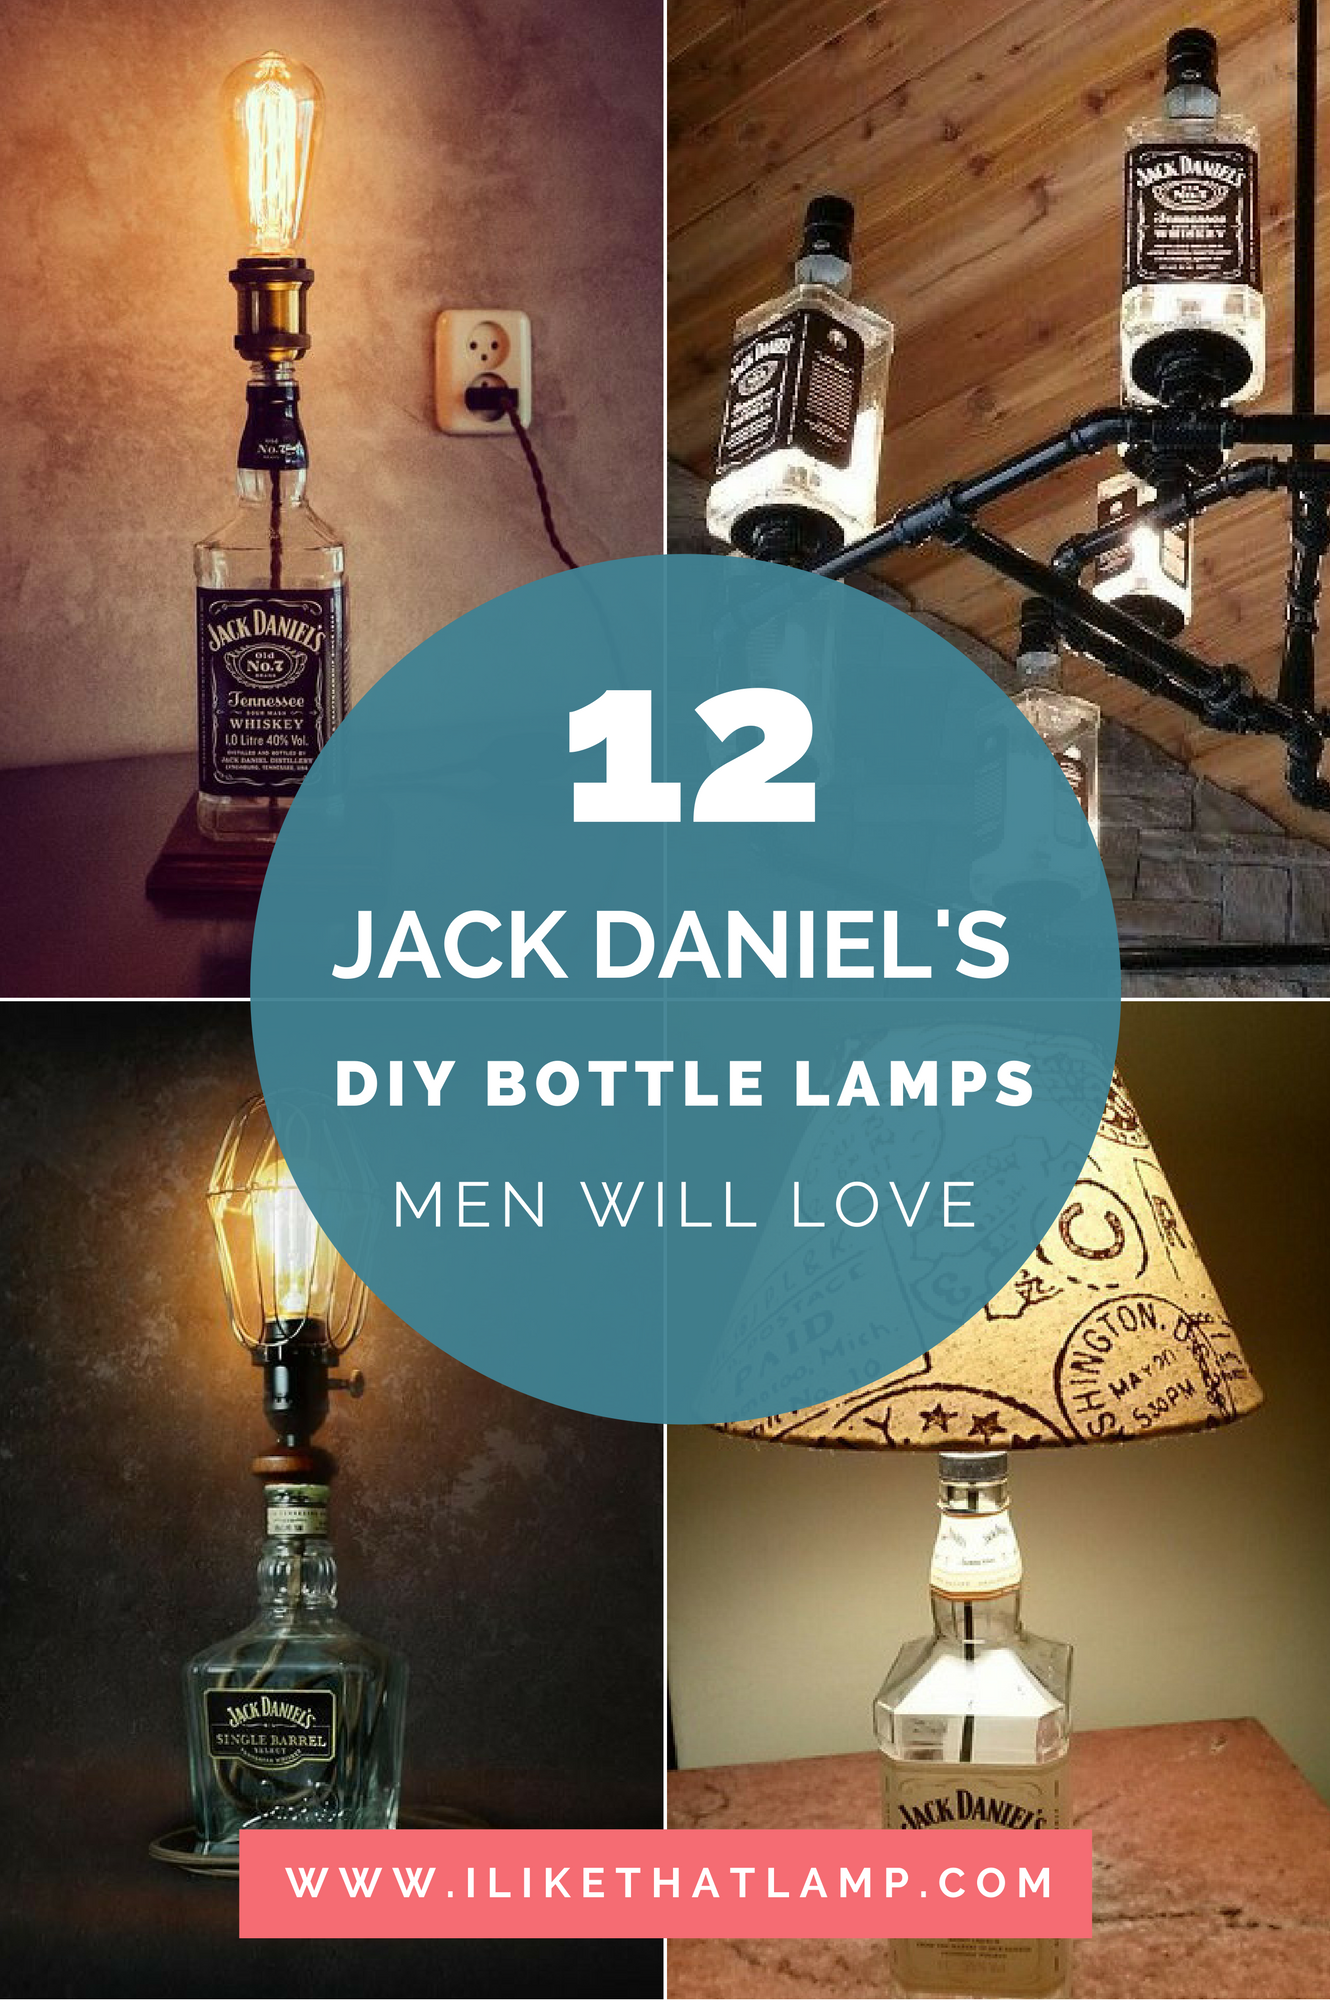 Lighting Ideas For Man Cave on lighting for kitchen ideas, lighting for deck ideas, lighting for basement ideas, lighting for dining room decorating ideas, decorations for man cave ideas, lighting for home office ideas, lighting for bedroom ideas,